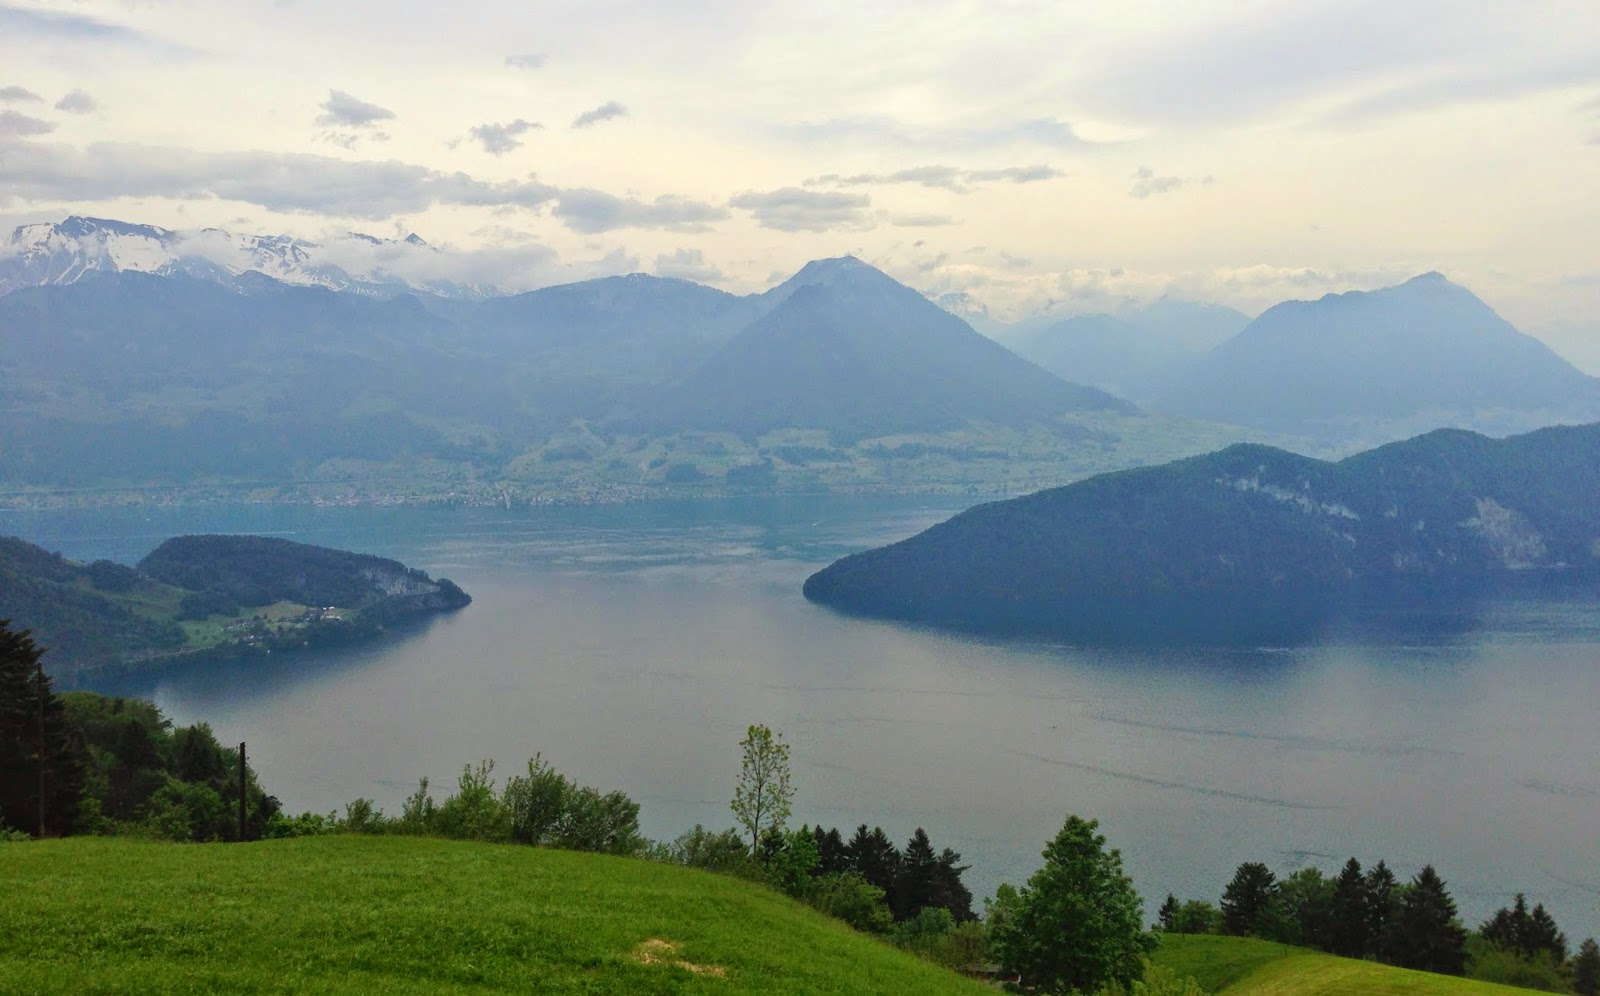 mt.rigi tour from lucerne